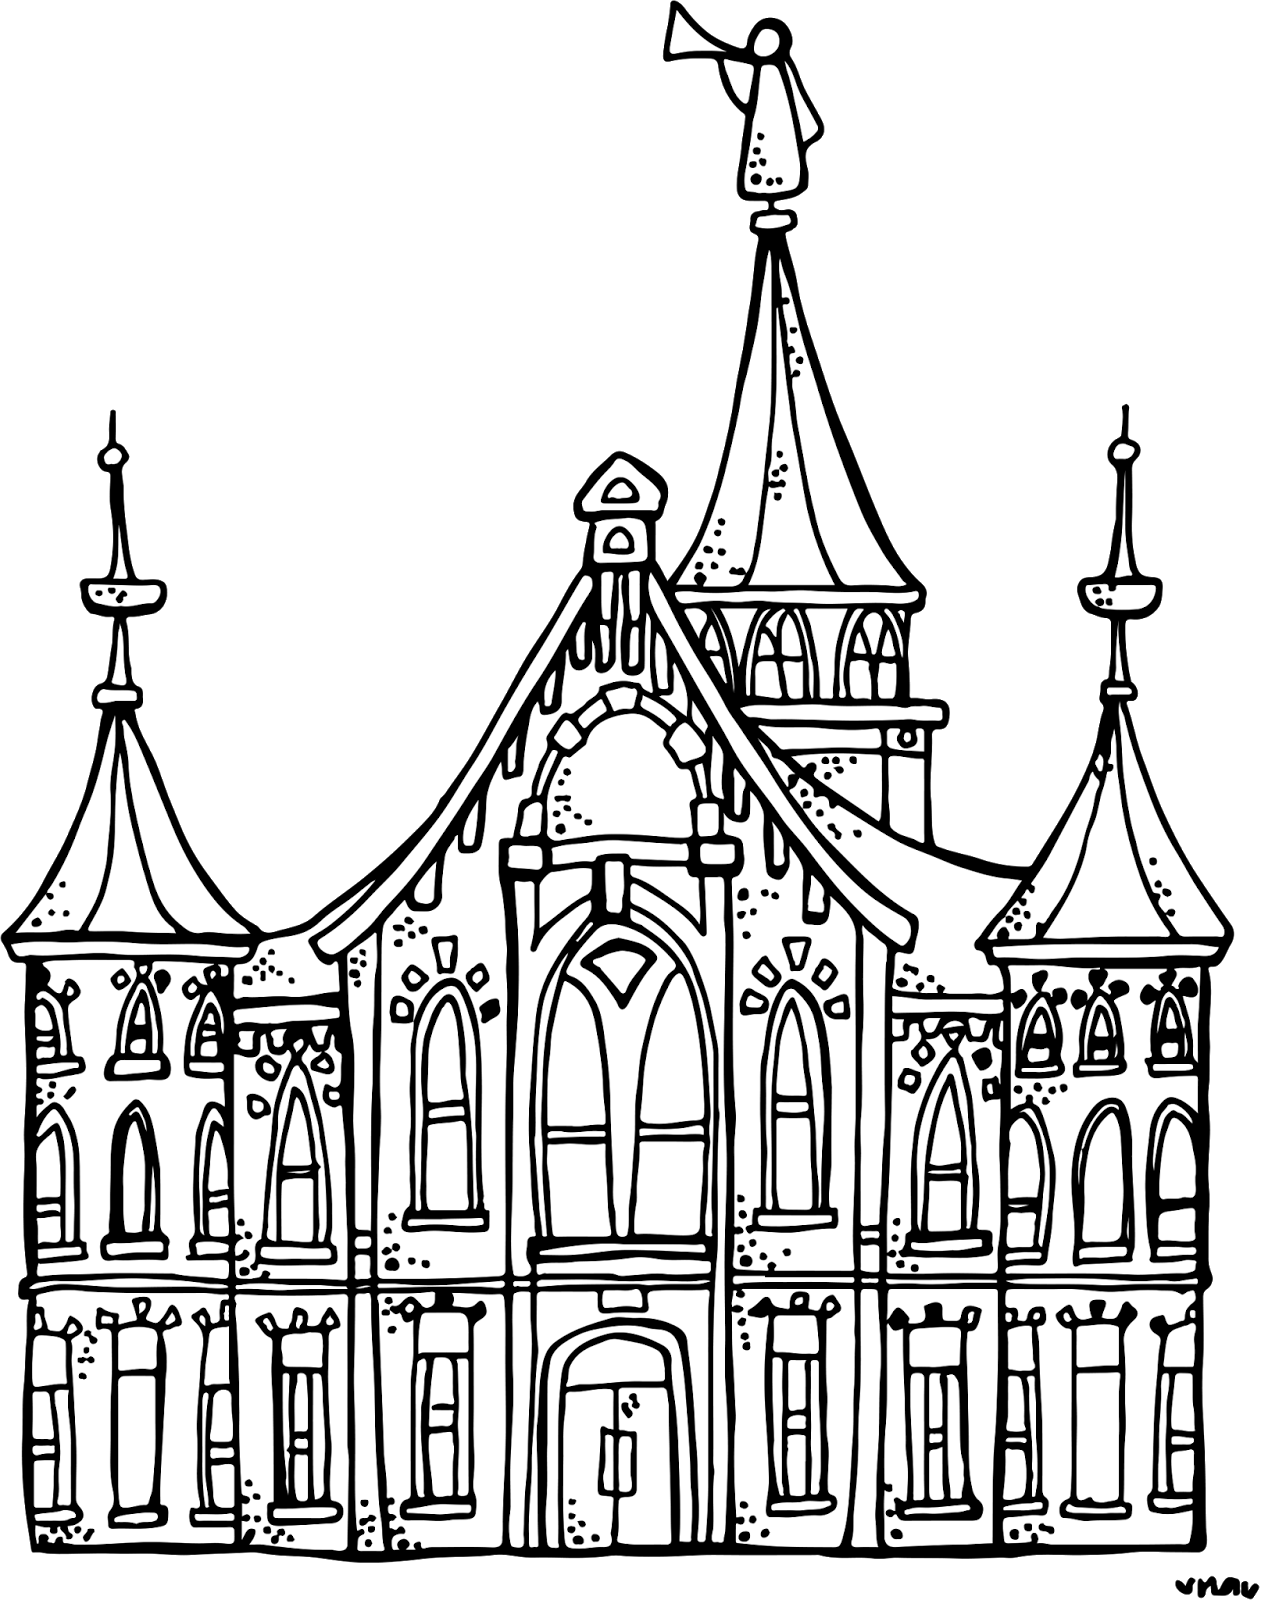 1261x1600 Melonheadz Lds Illustrating Provo City Center Temple )